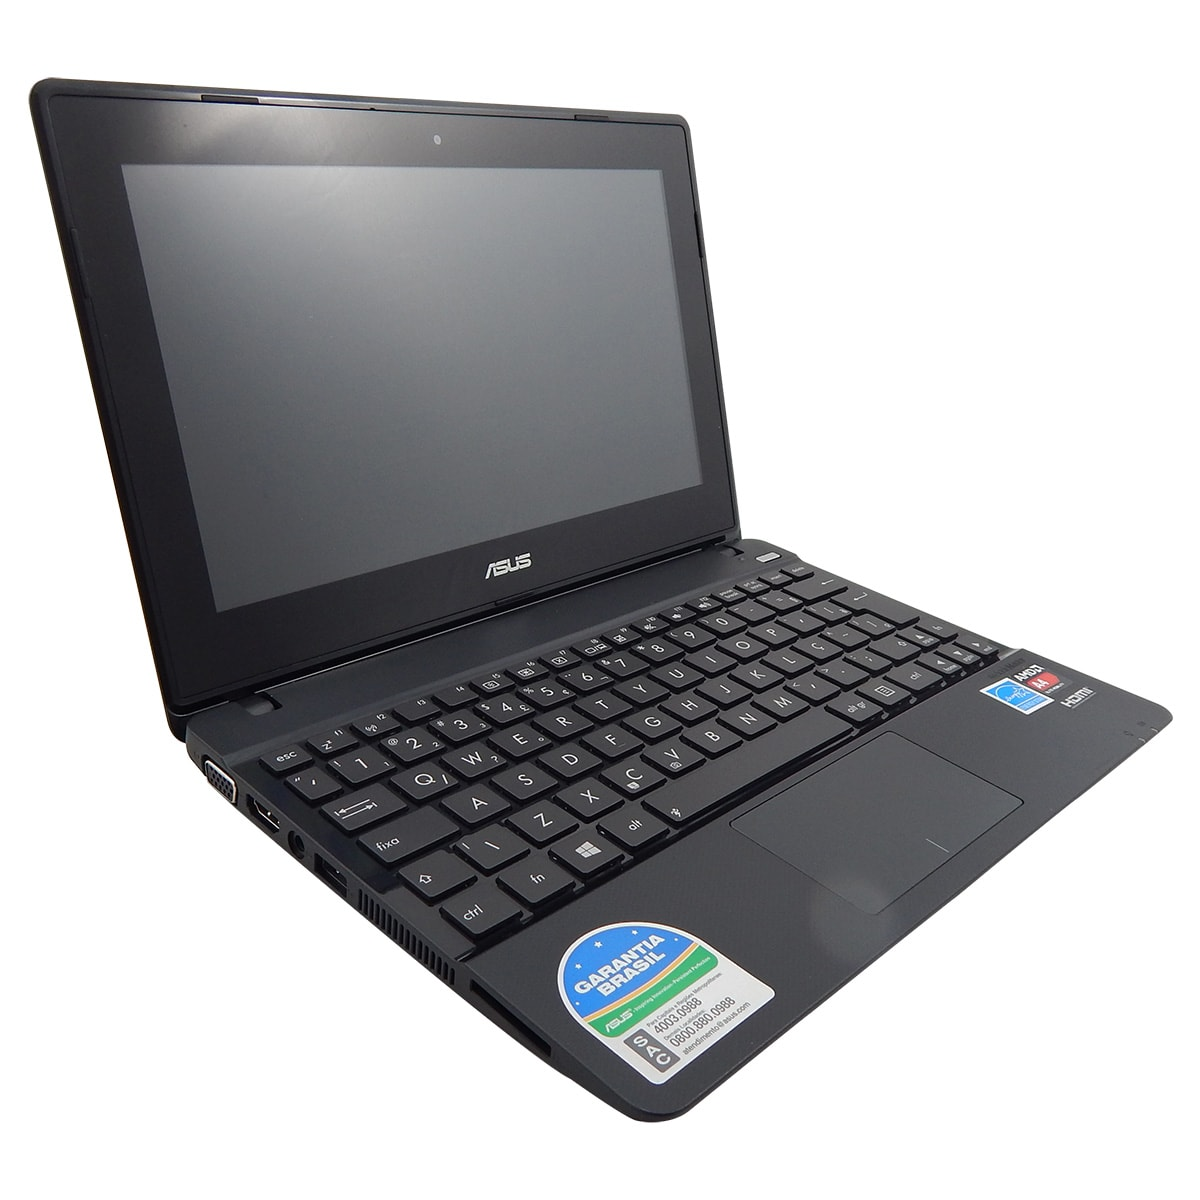 Netbook Asus X102ba Amd Dual Core 2gb DDR3 320gb Tela 10.1 Touch